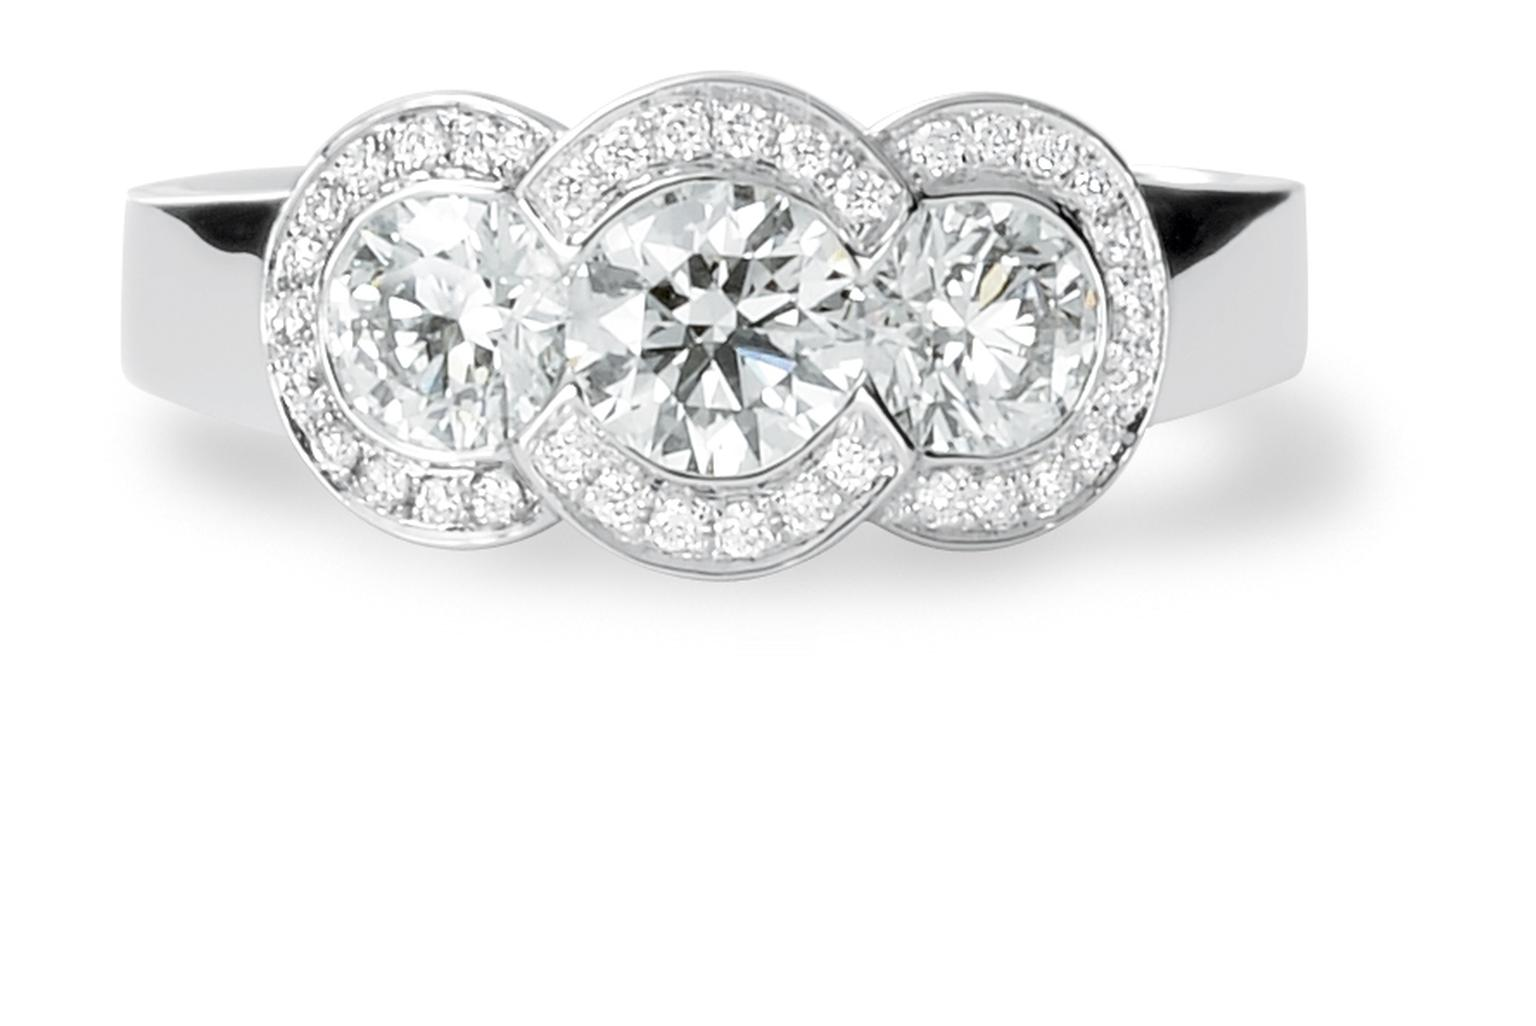 David M Robinson three stone engagement ring with diamond surround.